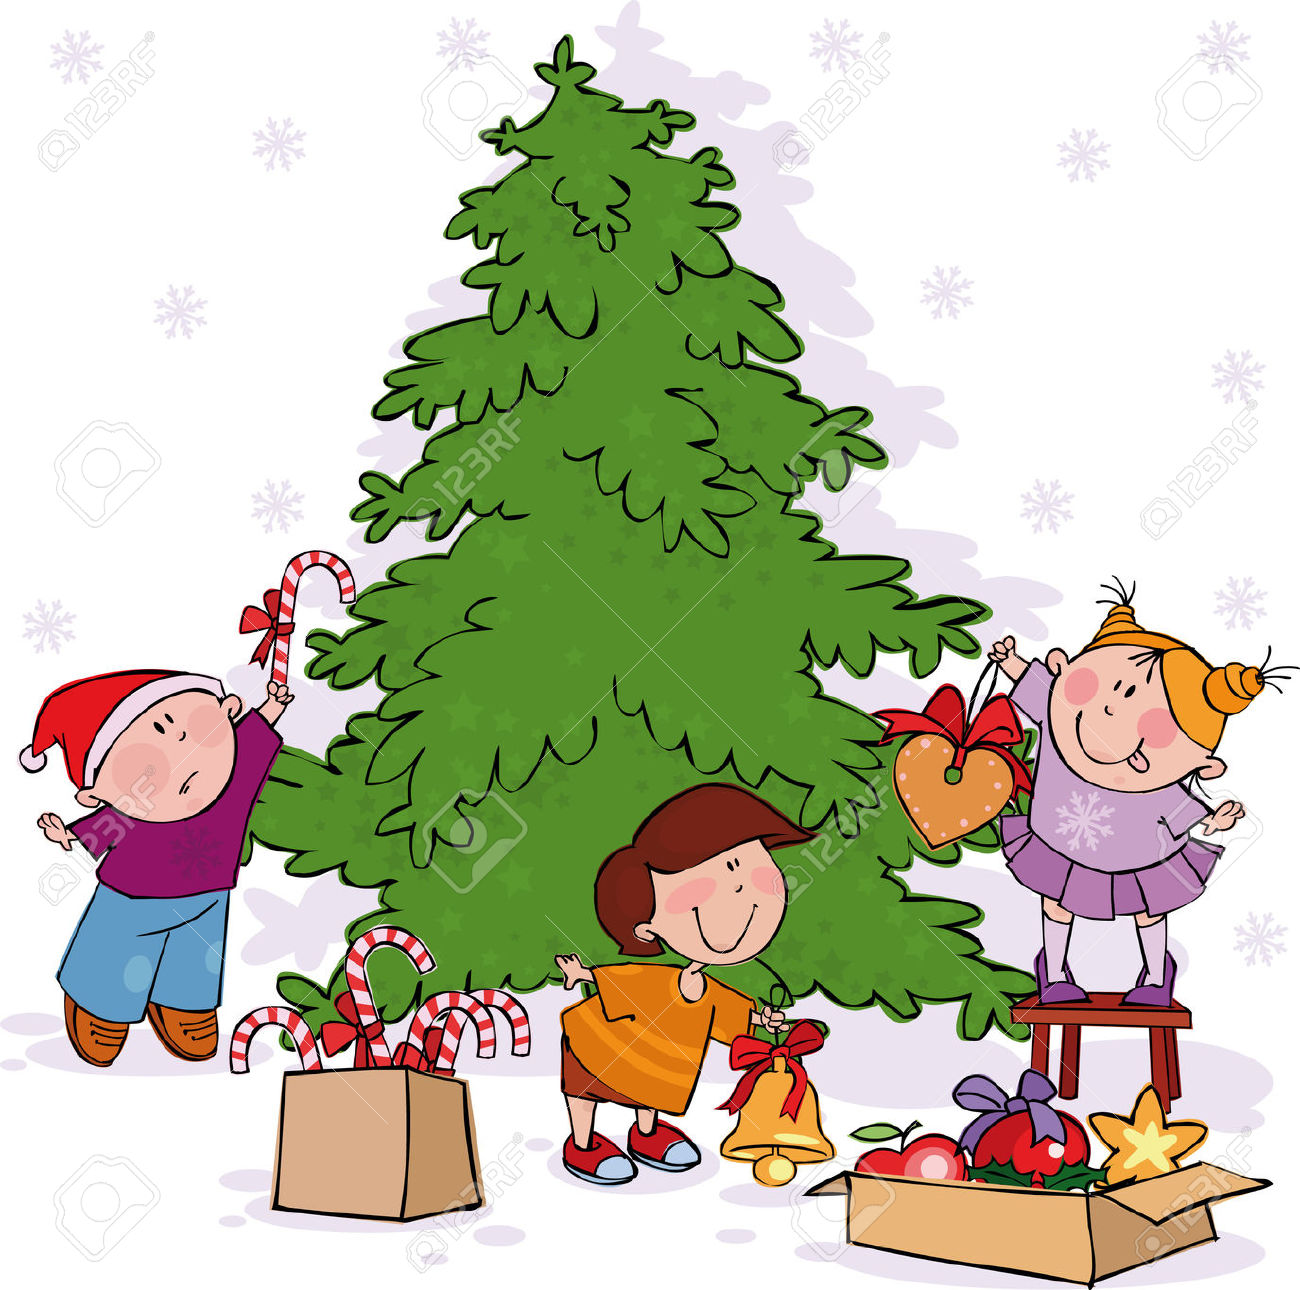 Christmas decorations for kids clipart.